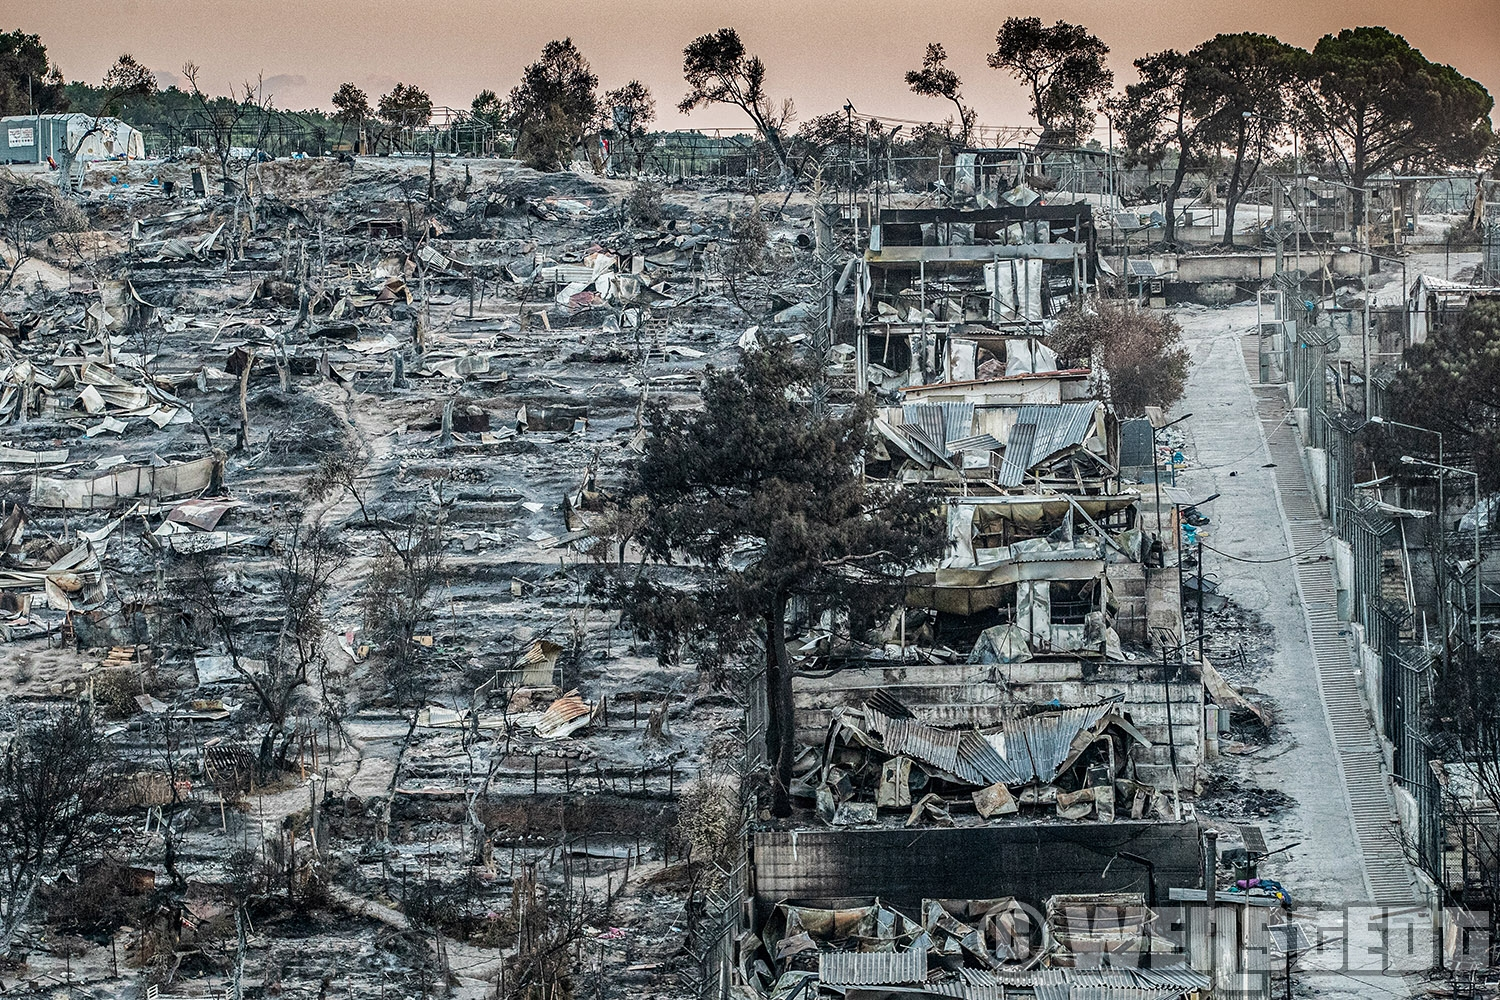 CAMP MOIRA (LESVOS) - Camp Moria was destroyed by fire. After Moria refugee camp completely was destroyed by fire, thousands of refugees are living on the streets of Kara Tepe (Lesvos).